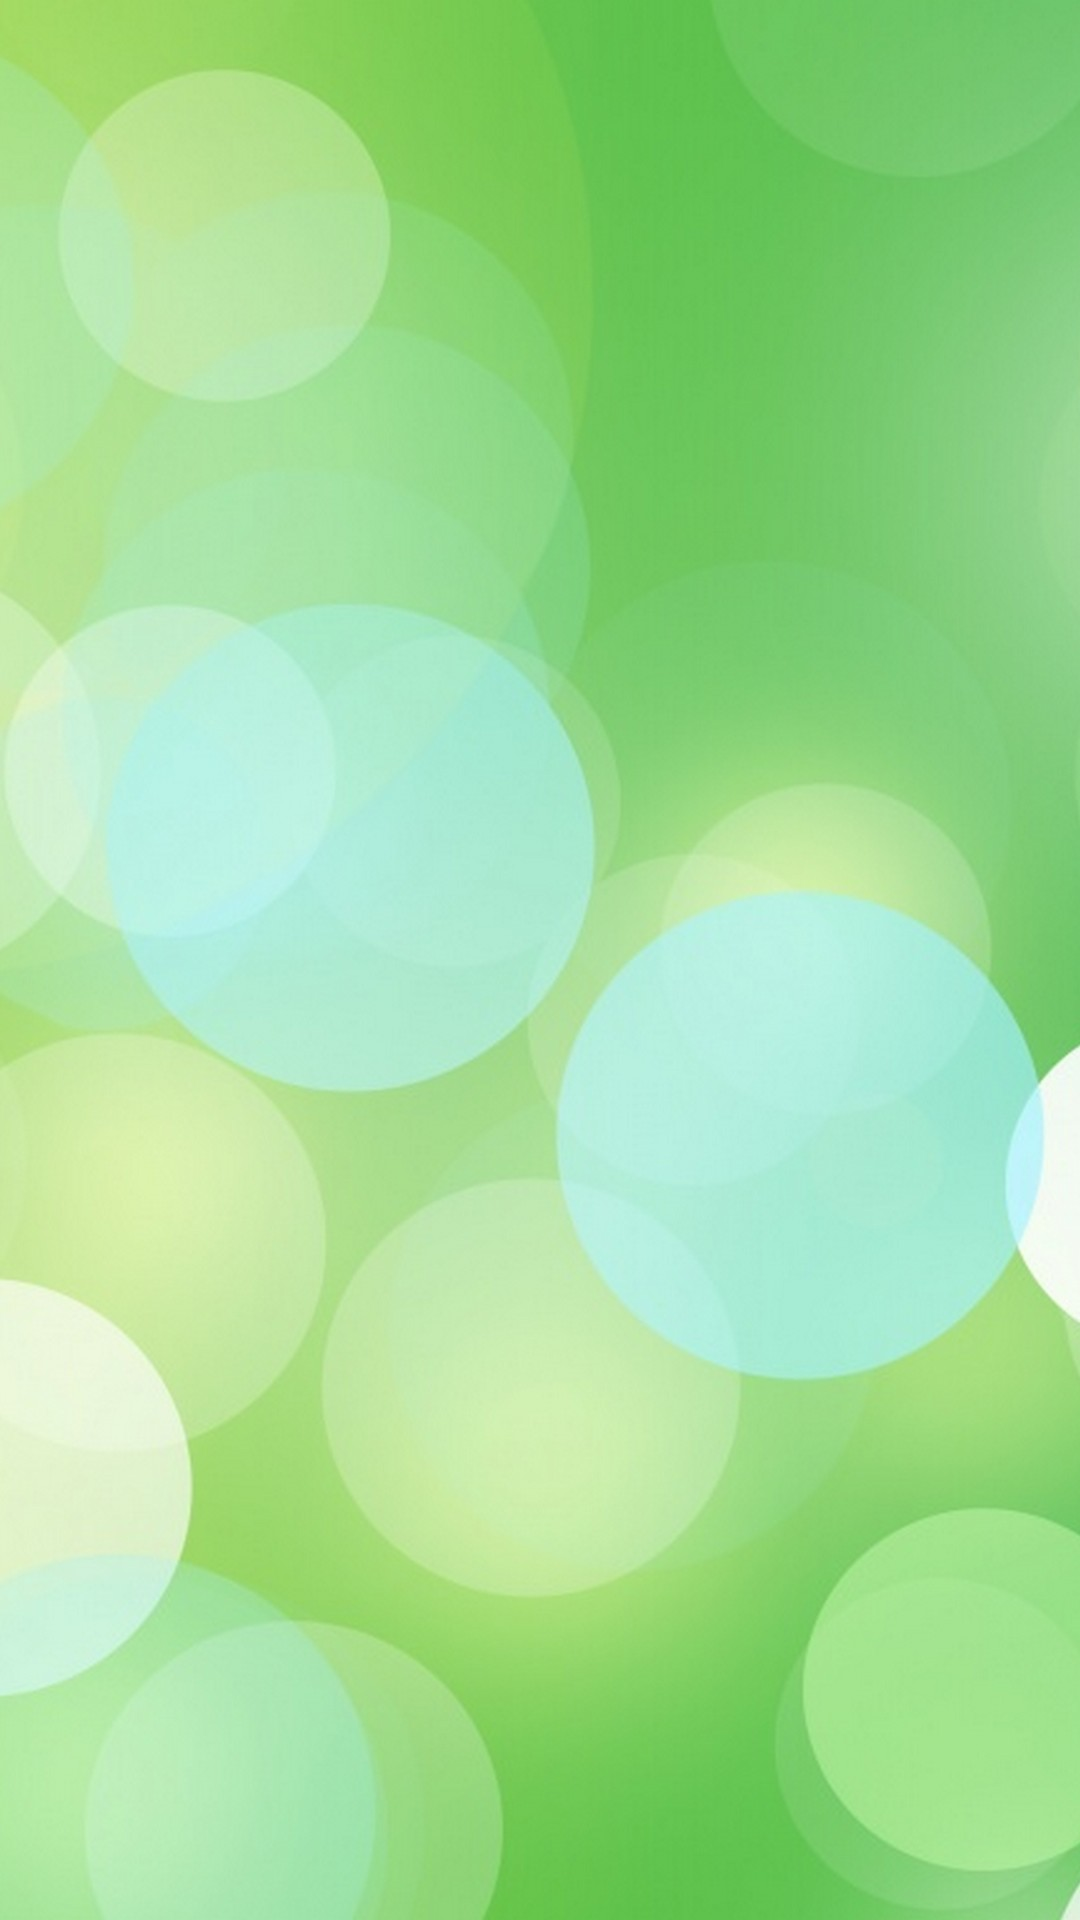 Light Green Wallpaper For Android 2020 Android Wallpapers